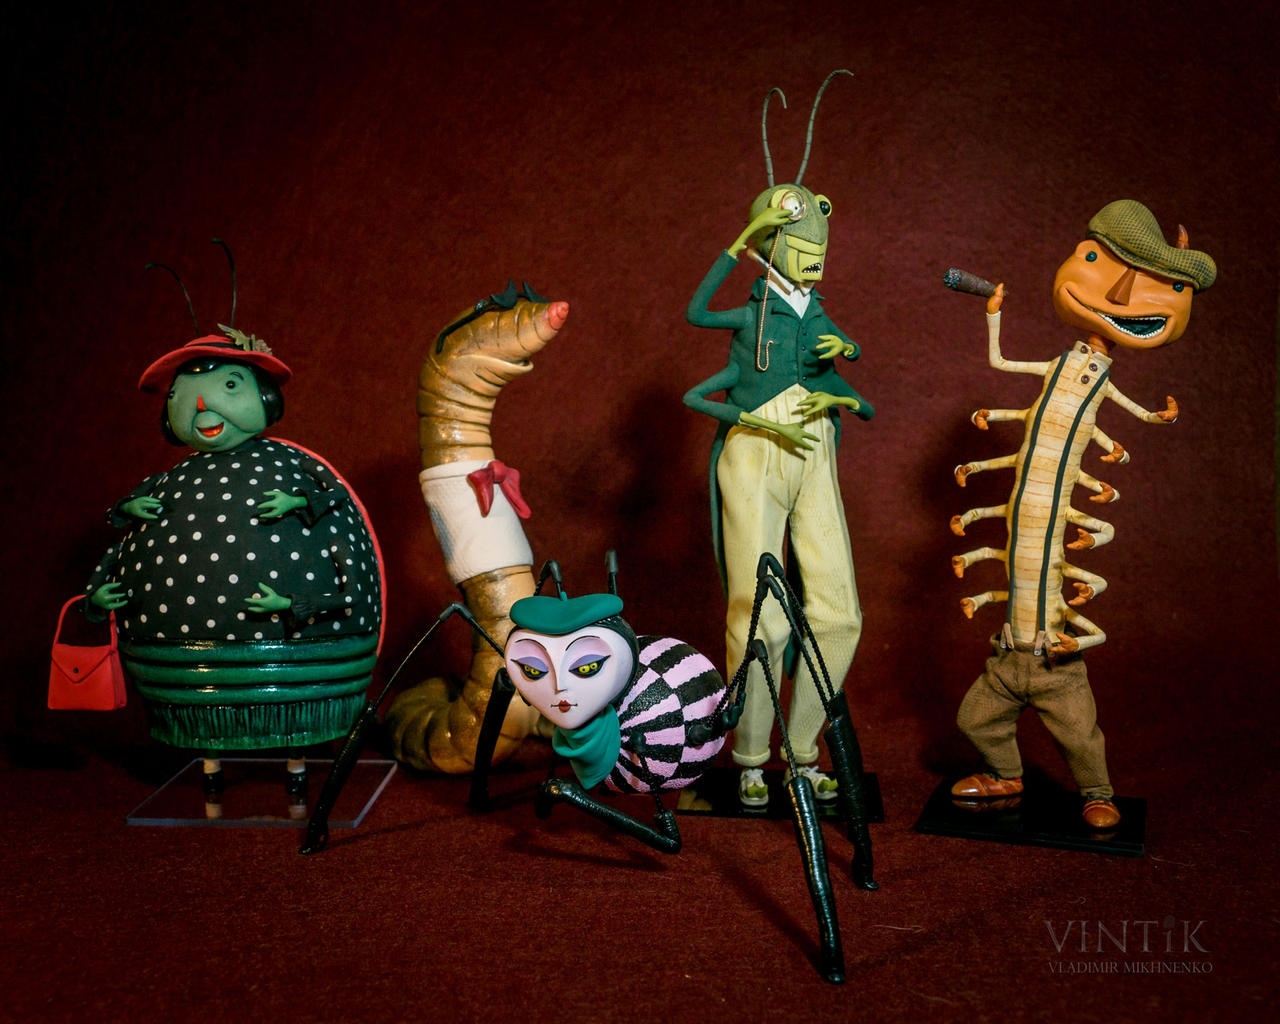 James And The Giant Peach By Vint1k On Deviantart